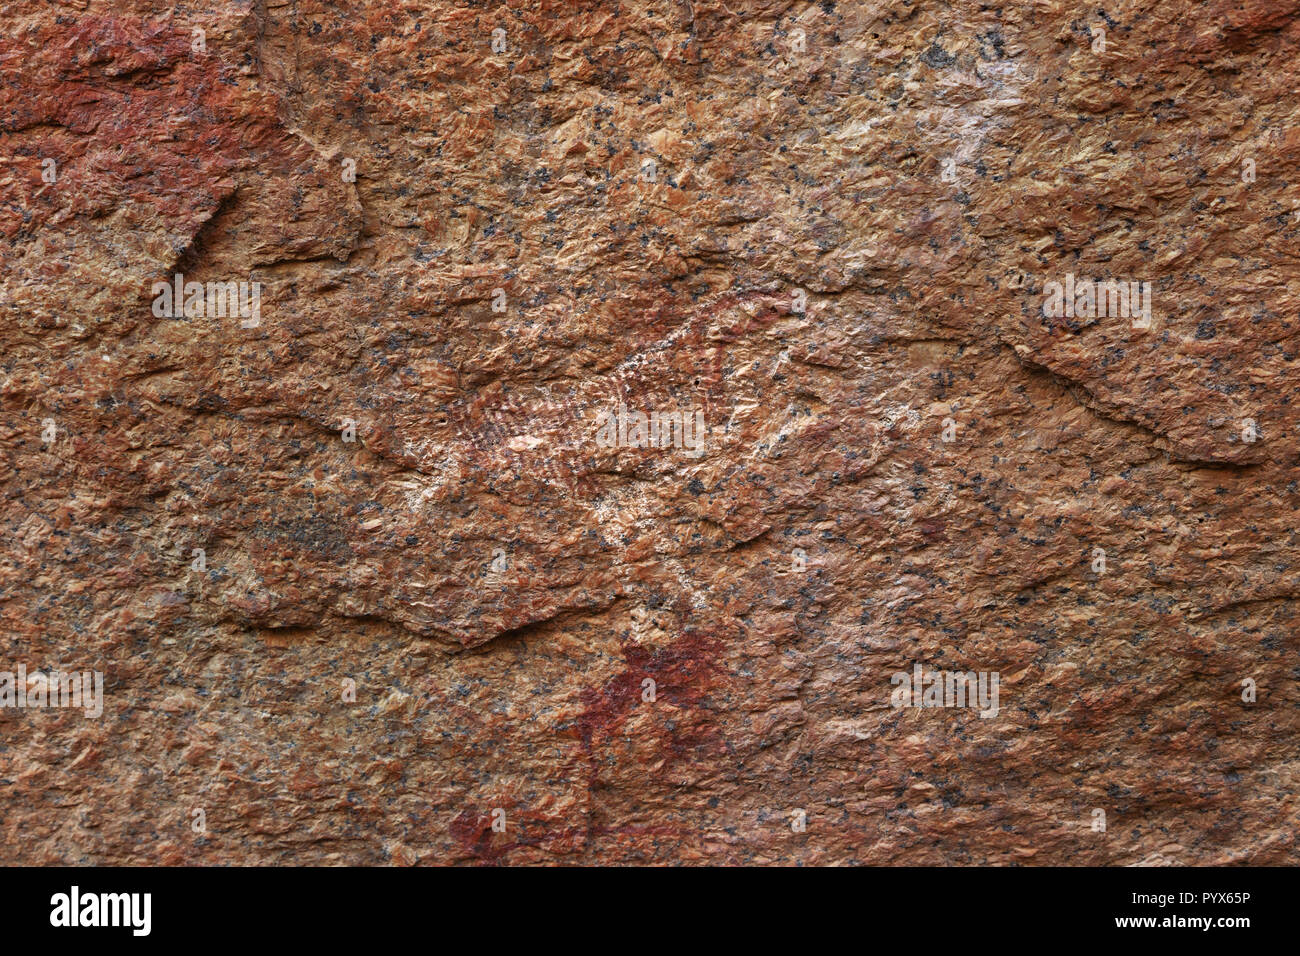 Namibia rock painting - ancient rock art by bushmen showing a zebra, about 2000 years old; Small Bushman Paradise, Spitzkoppe, Namibia Africa - Stock Image